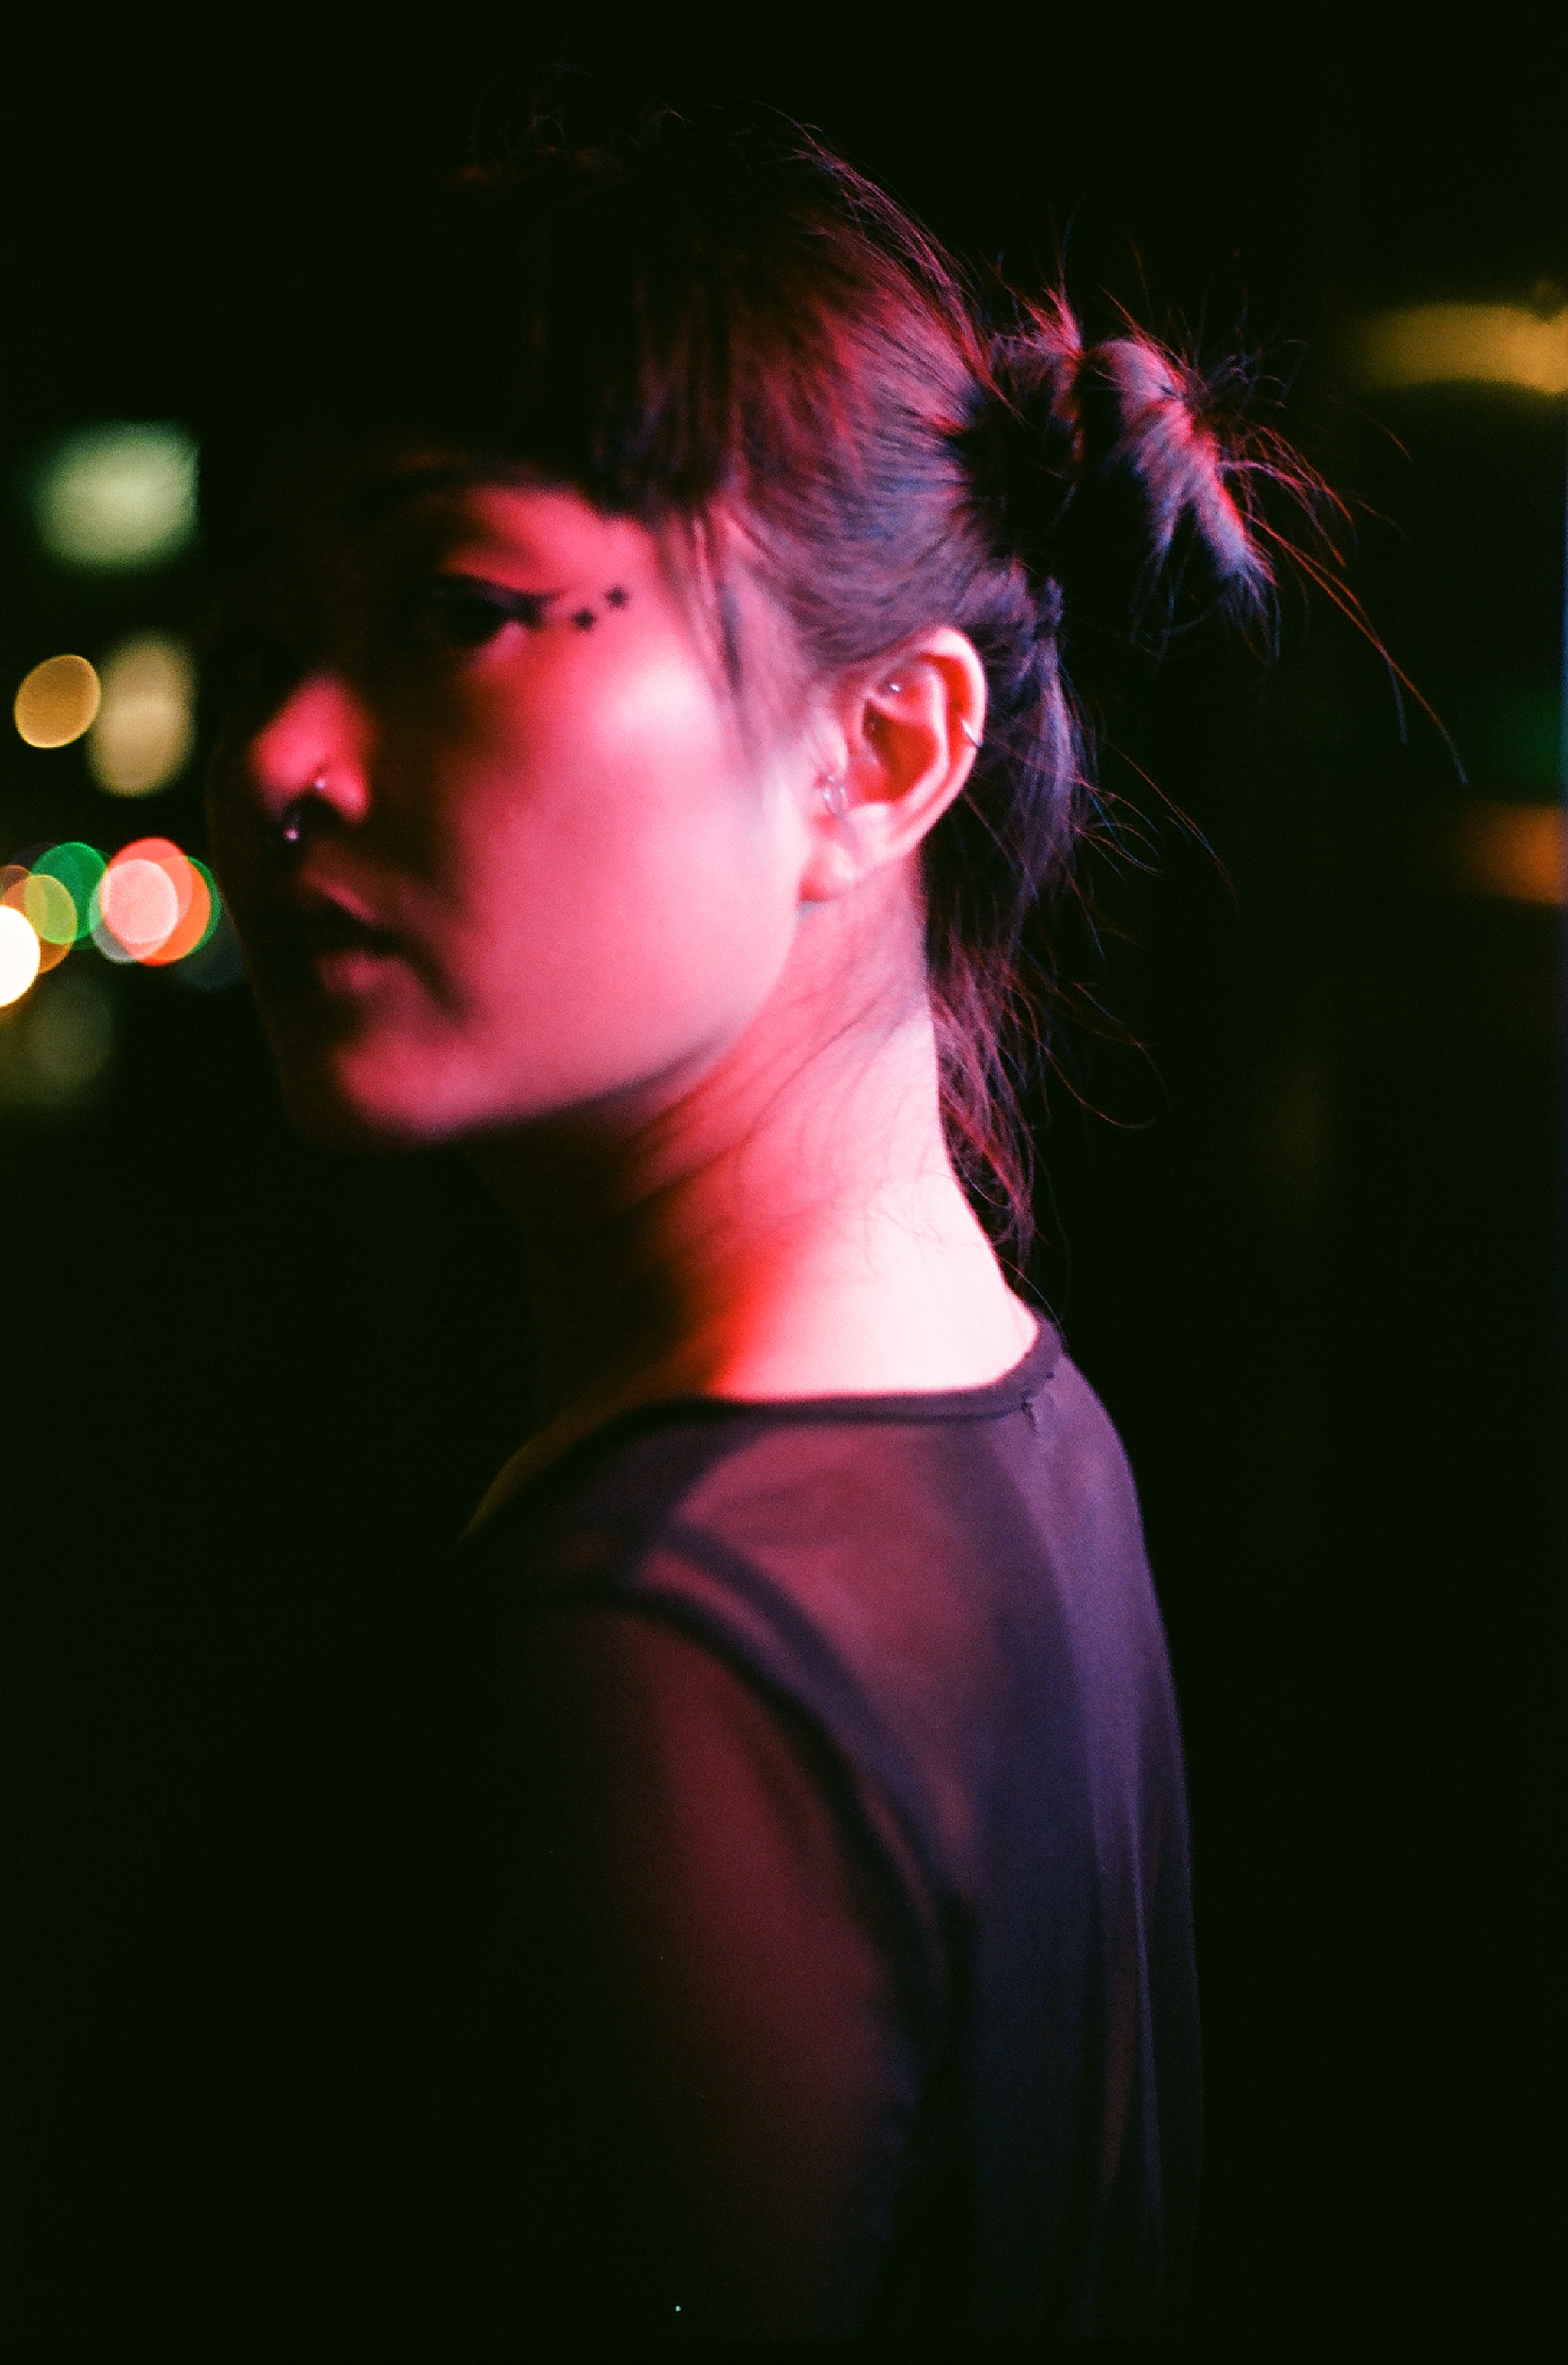 Cecily Lo on 35mm film